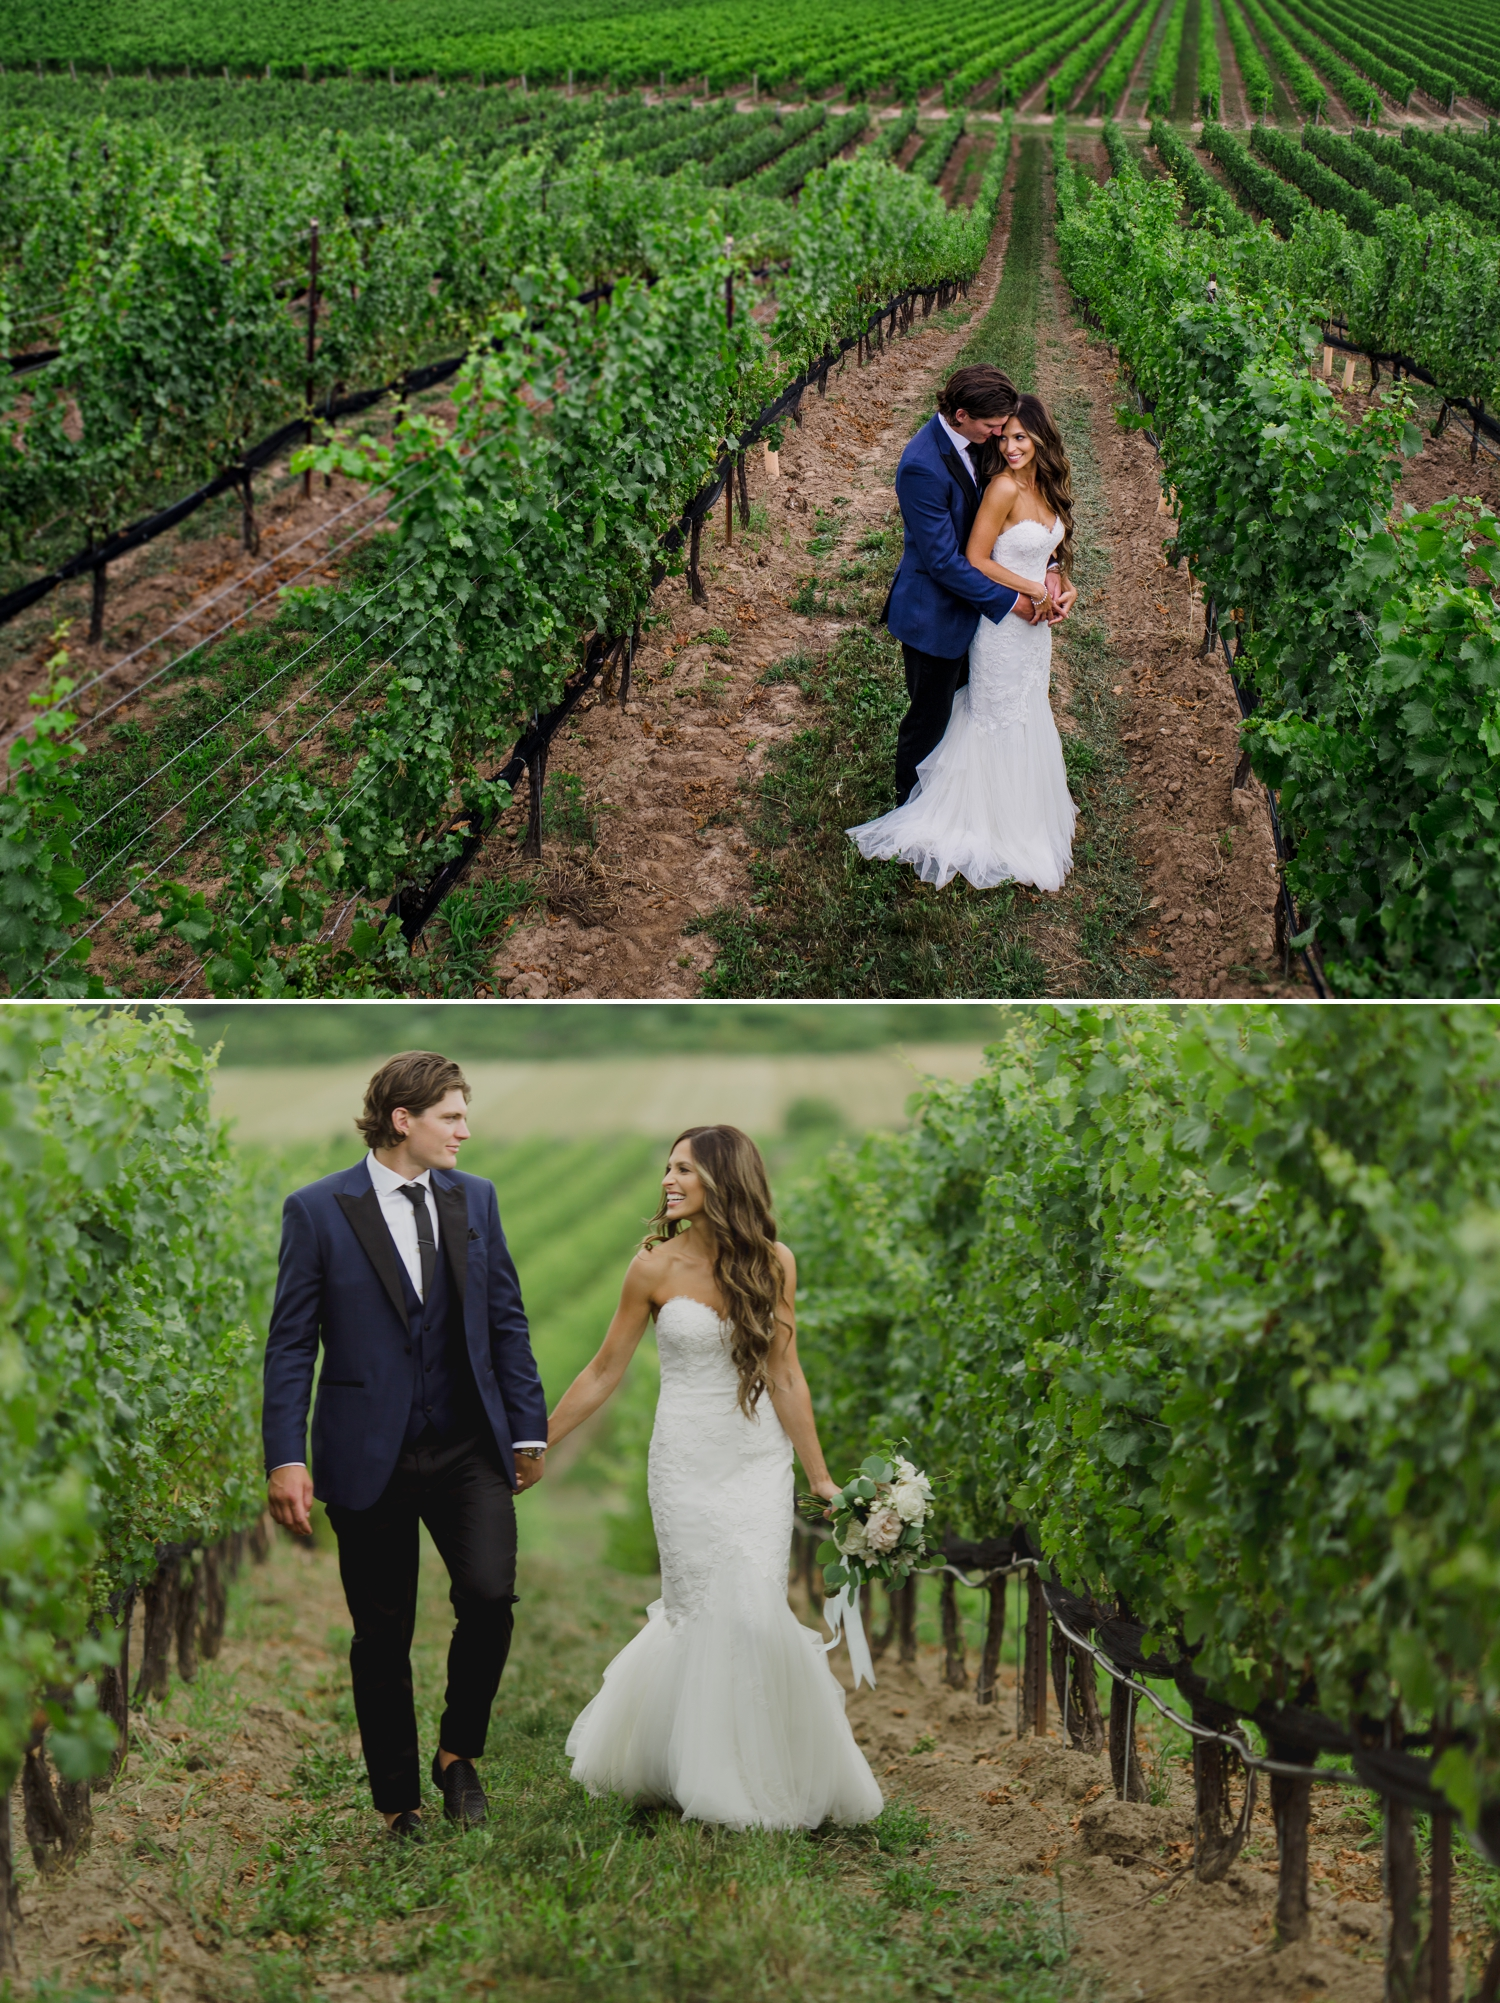 photos of the bride and groom during a wedding at the ravine vineyard in niagara on the lake ontario